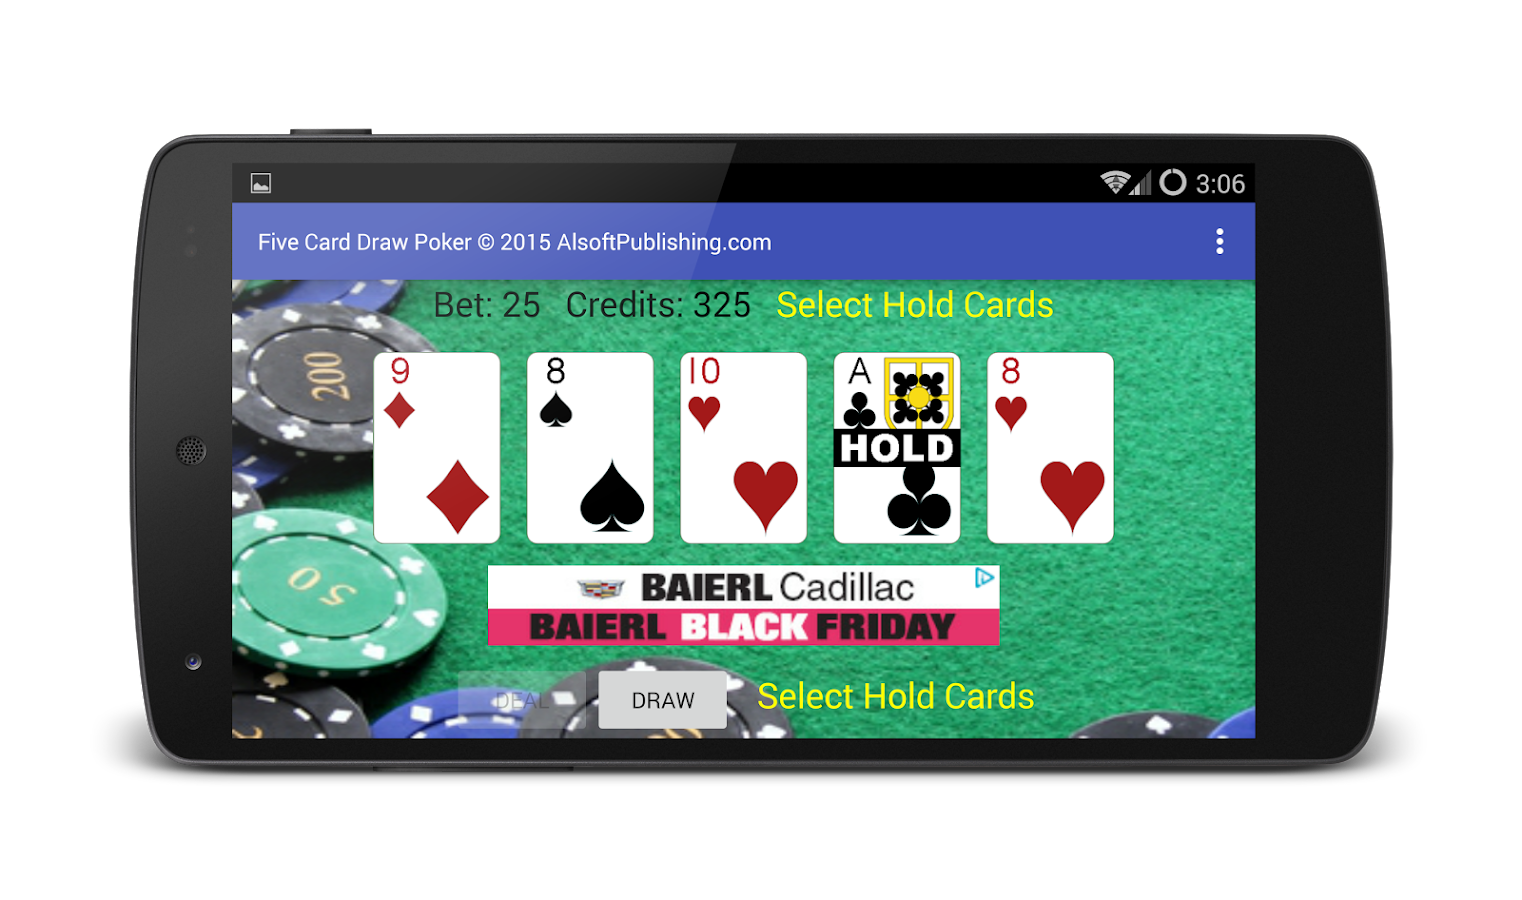 5 card draw poker